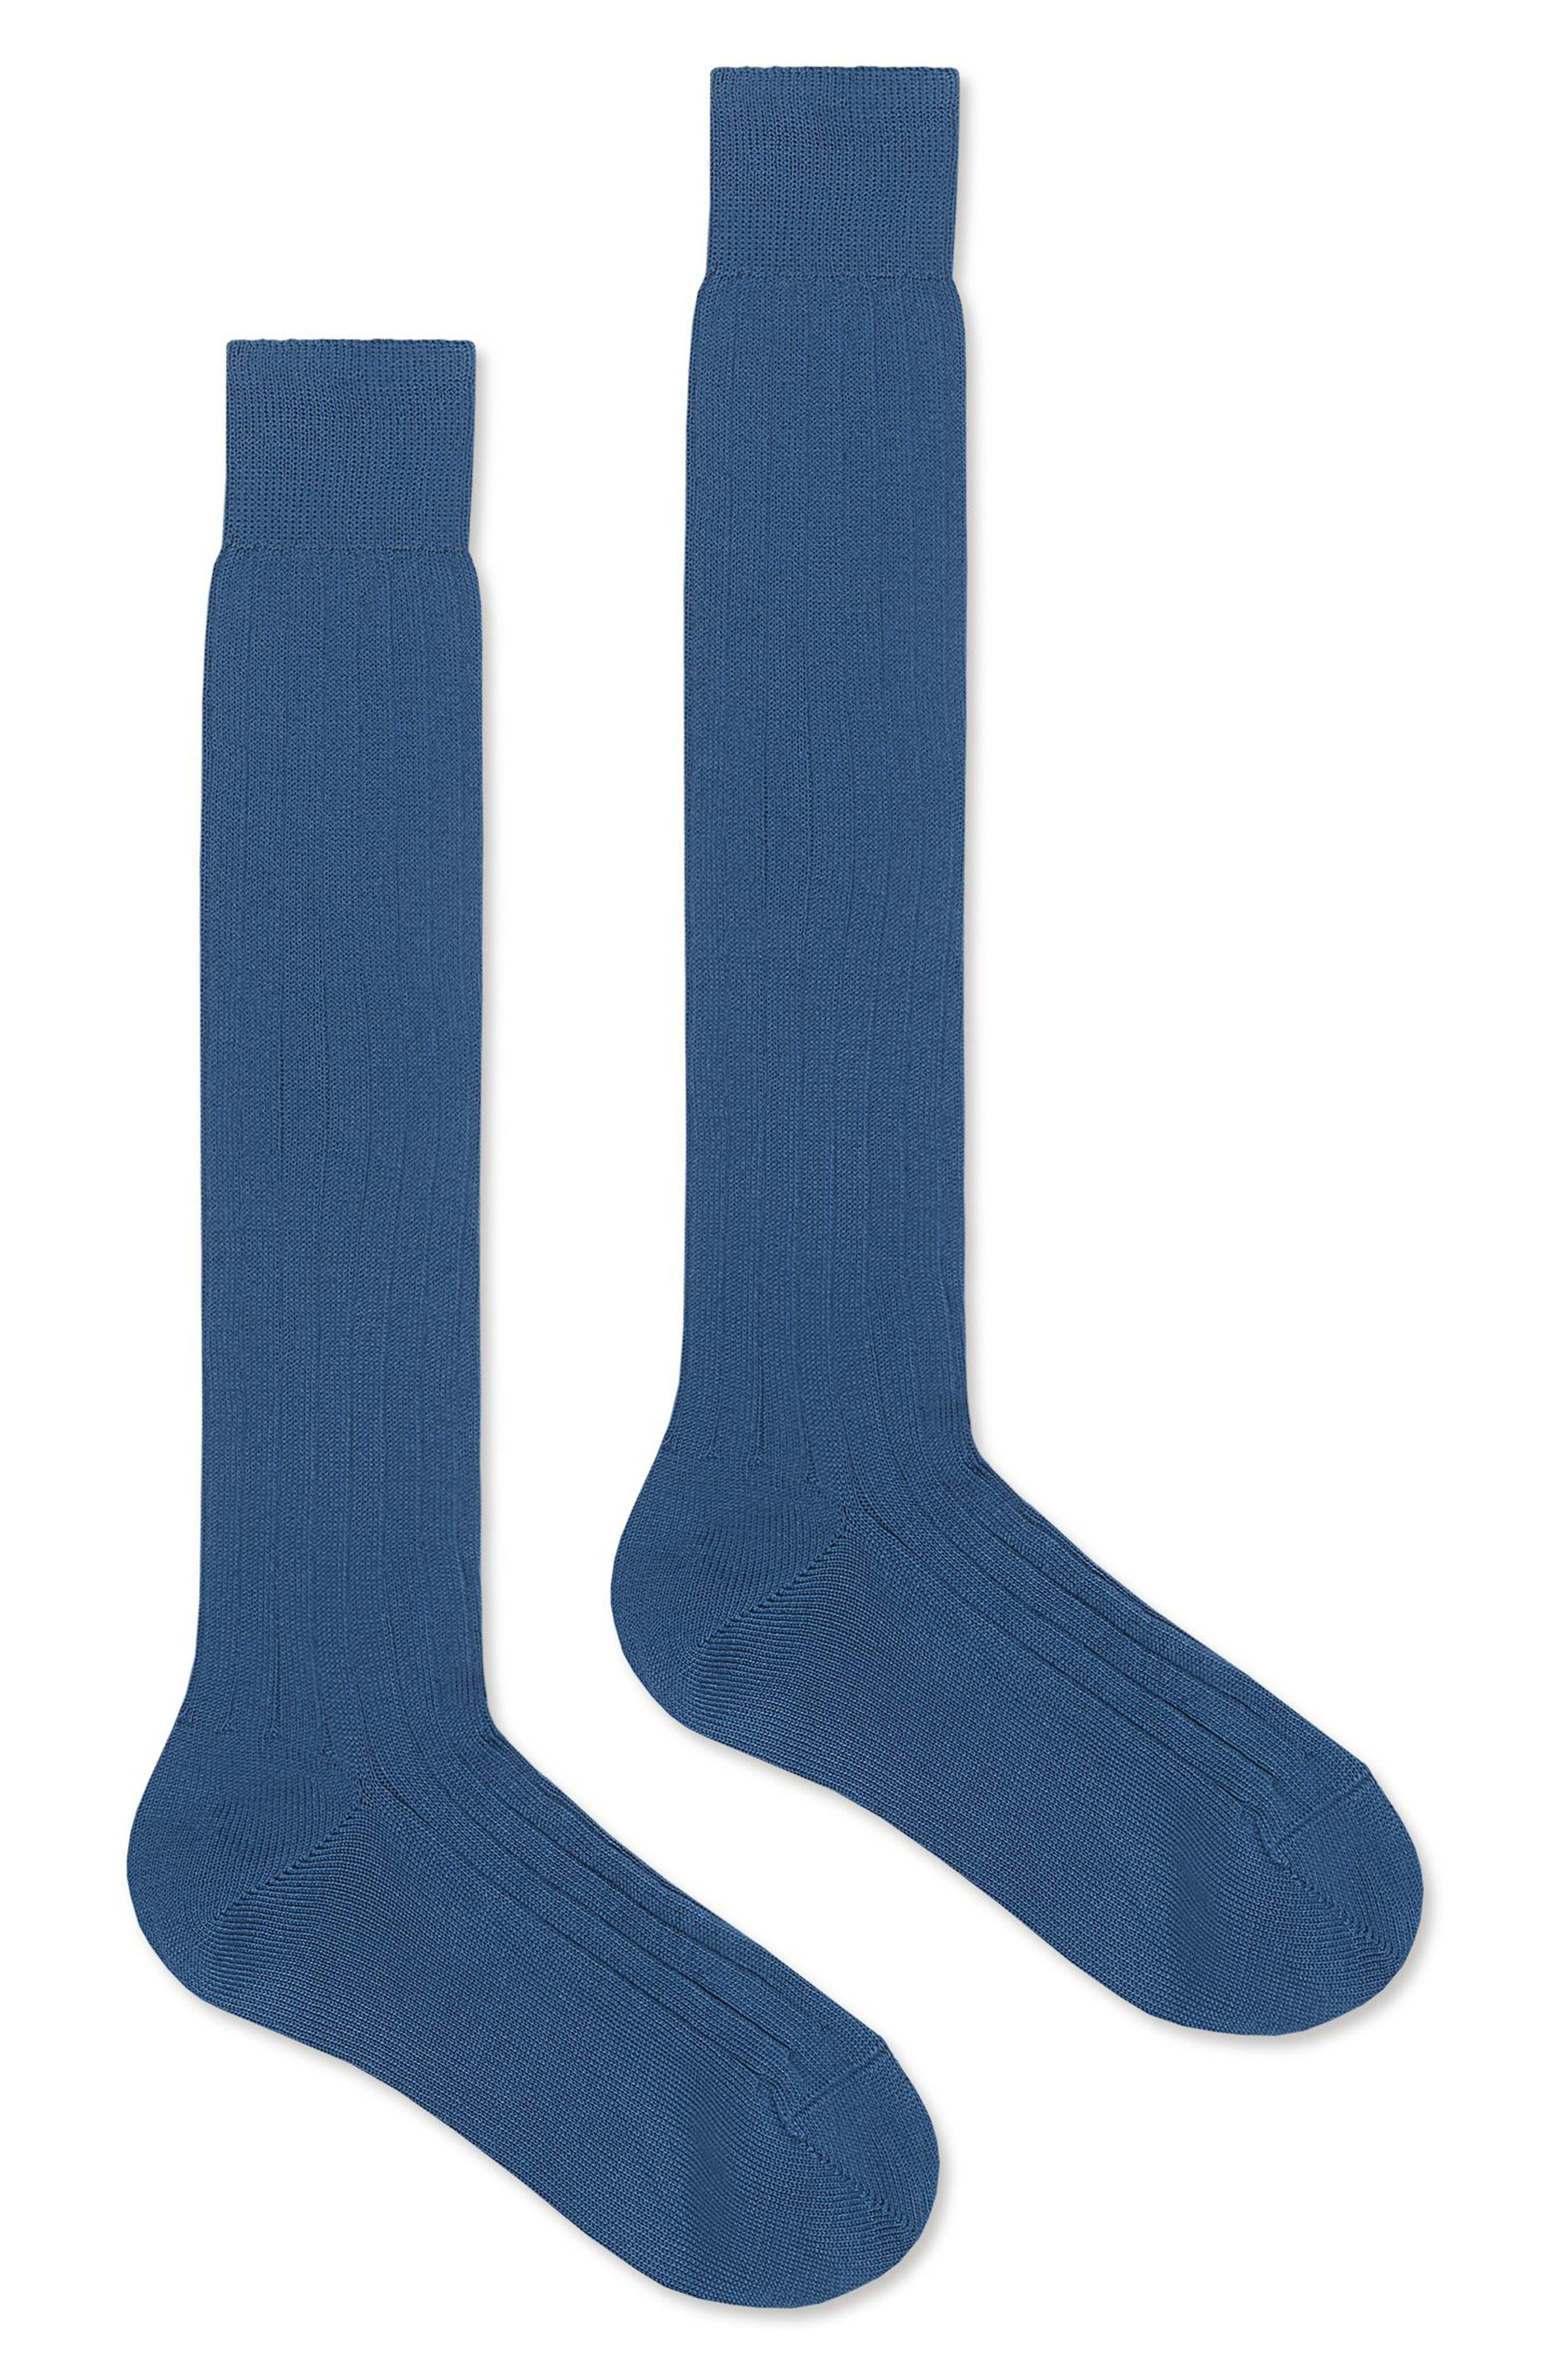 Cotton Socks,                             Alternate thumbnail 2, color,                             4400 Petroleum Blue